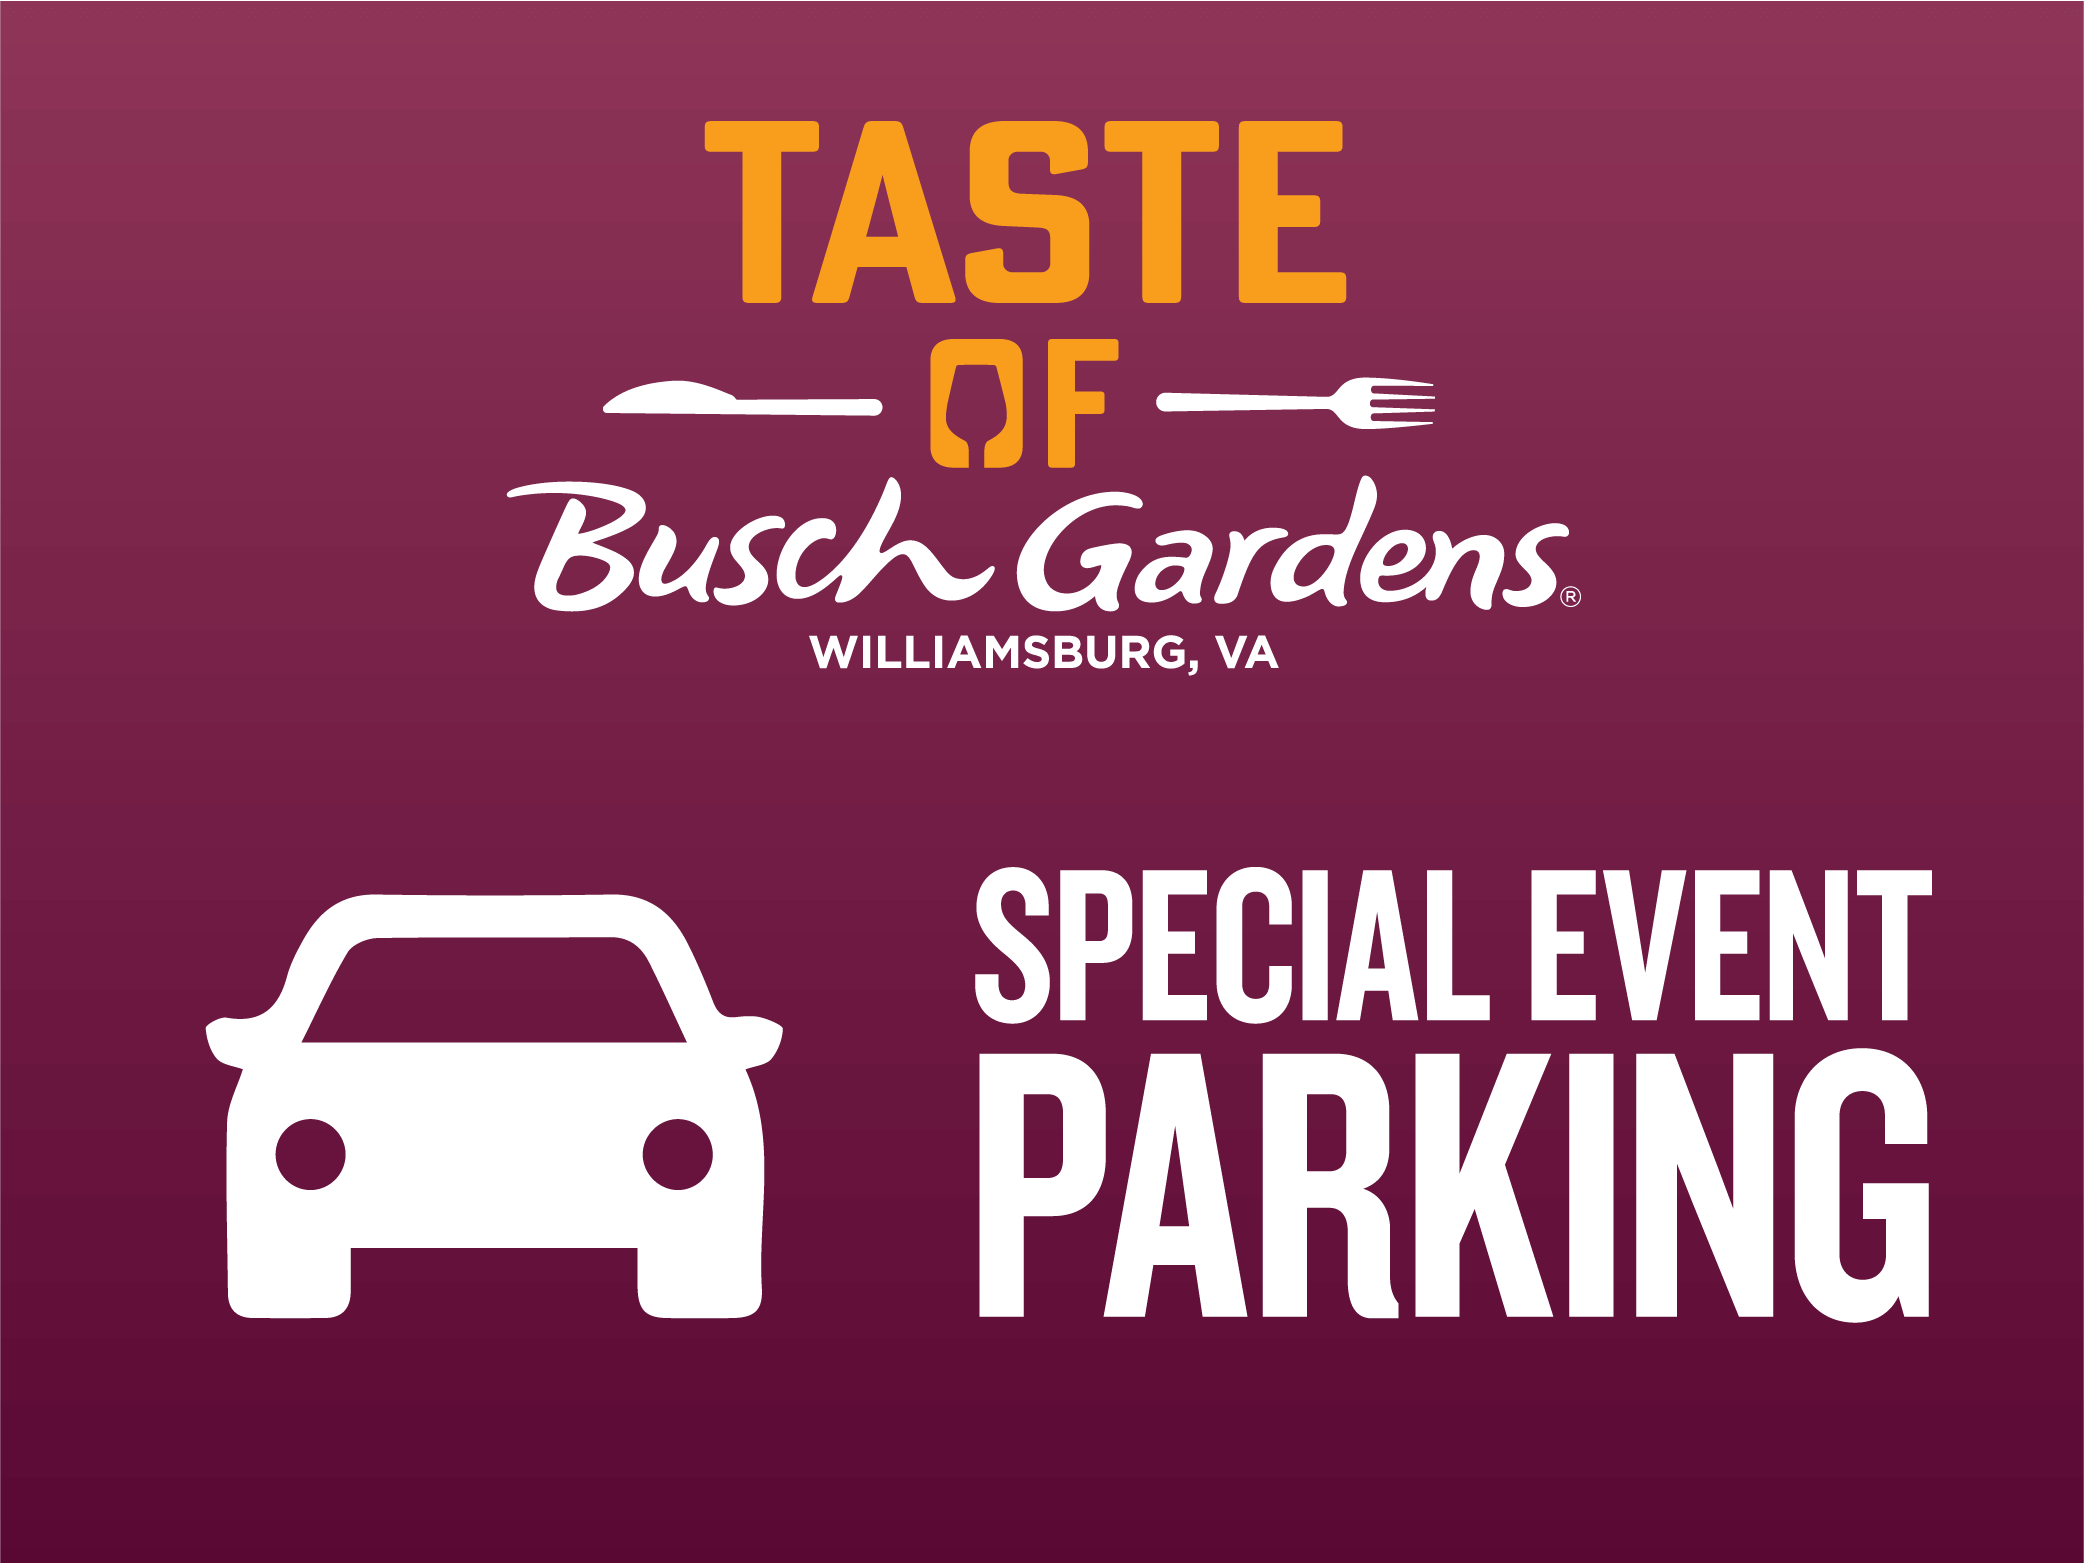 Taste of Busch Gardens Williamsburg Special Event Parking